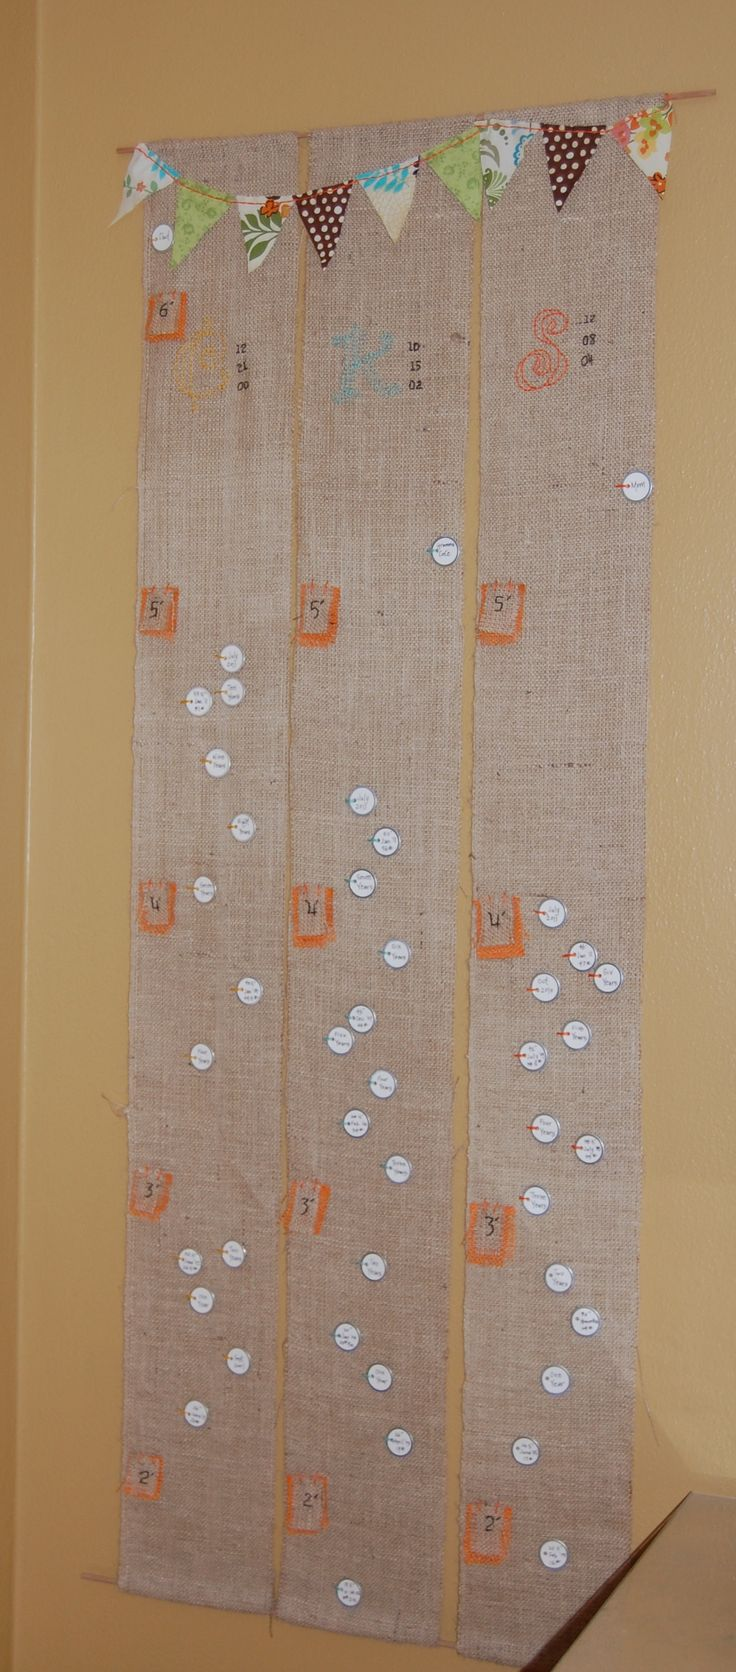 65 best growth chart ideas images on pinterest growth charts diy portable growth chart a little sugar nvjuhfo Images